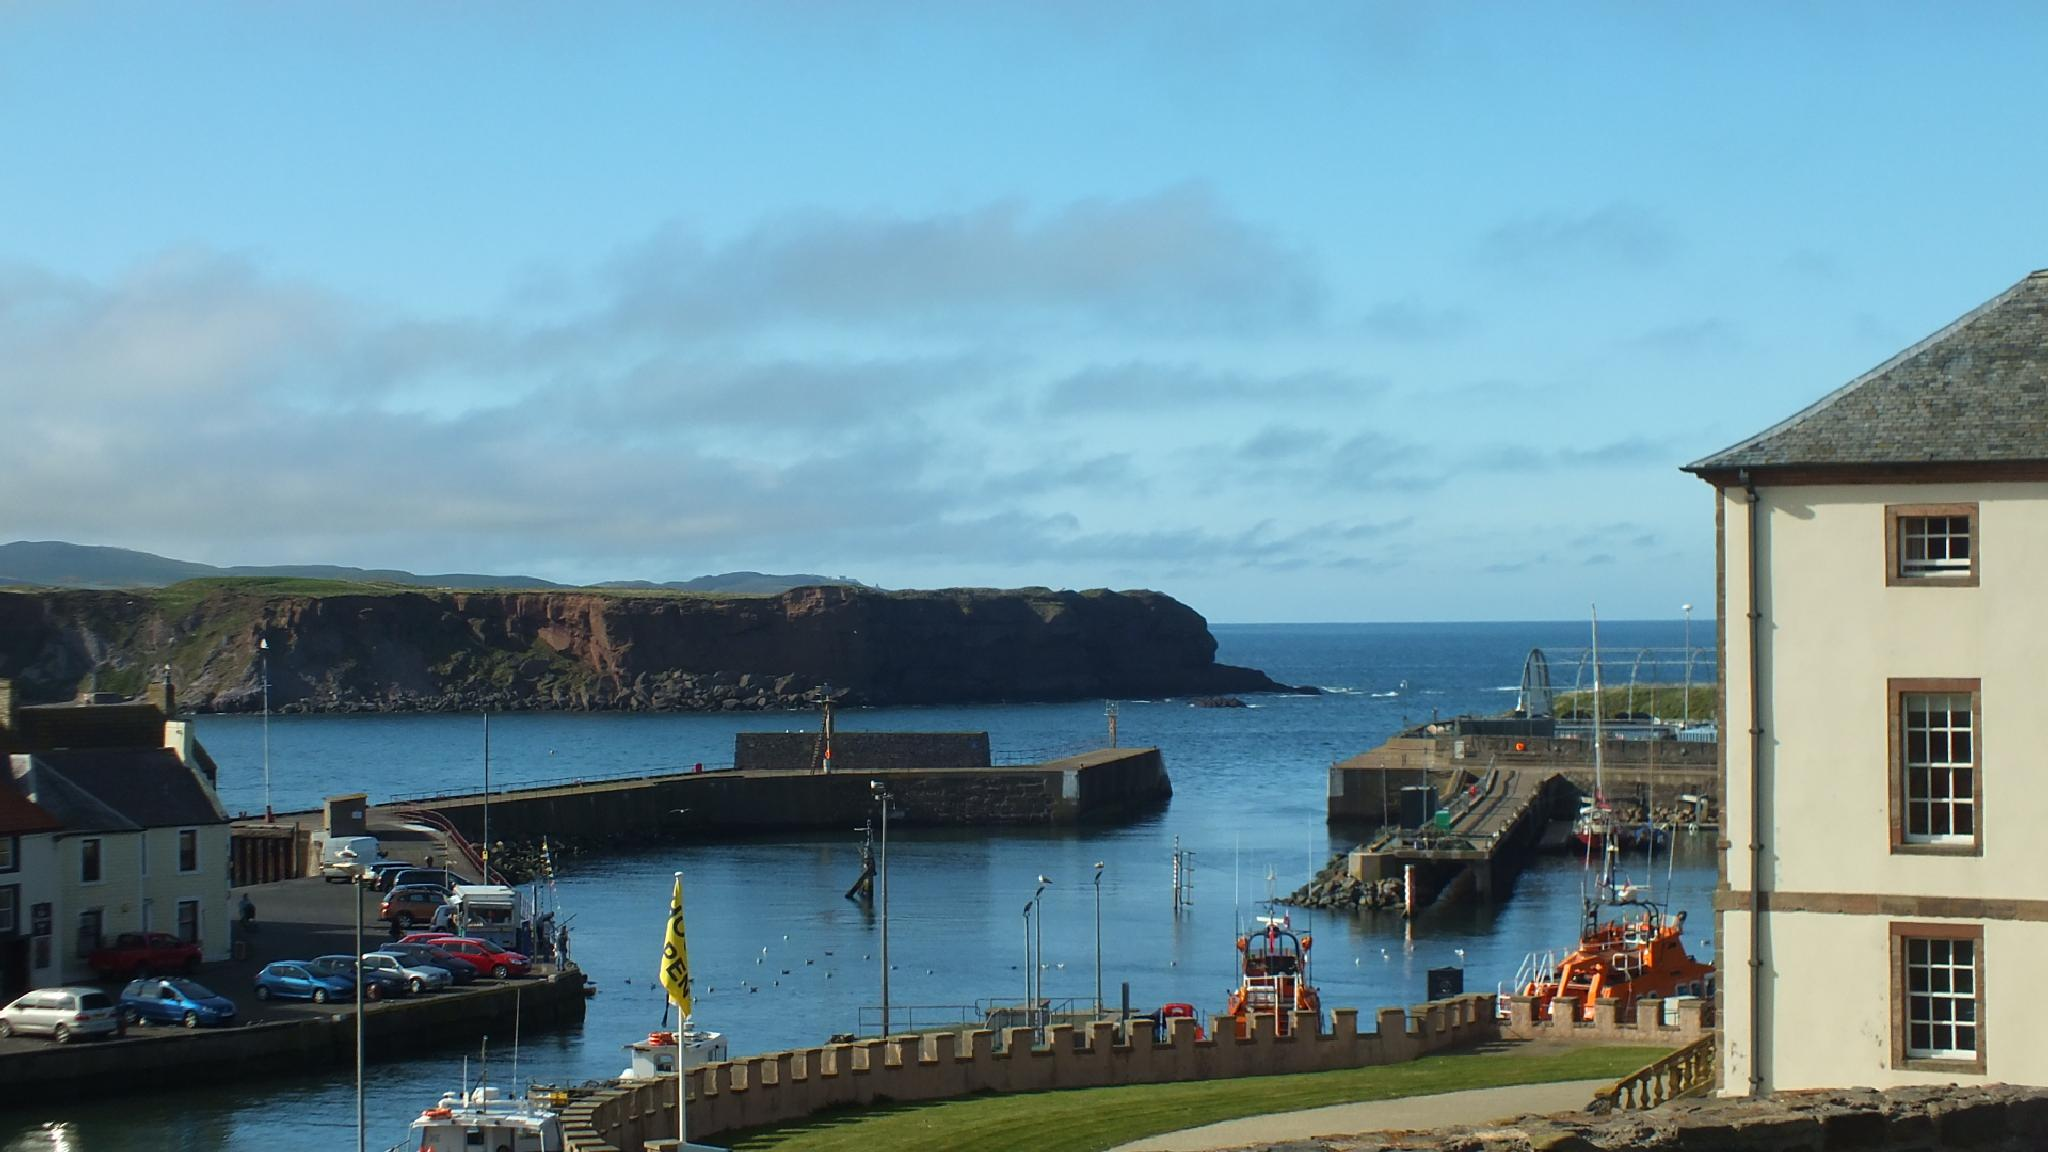 eyemouth by Tommy.Linde